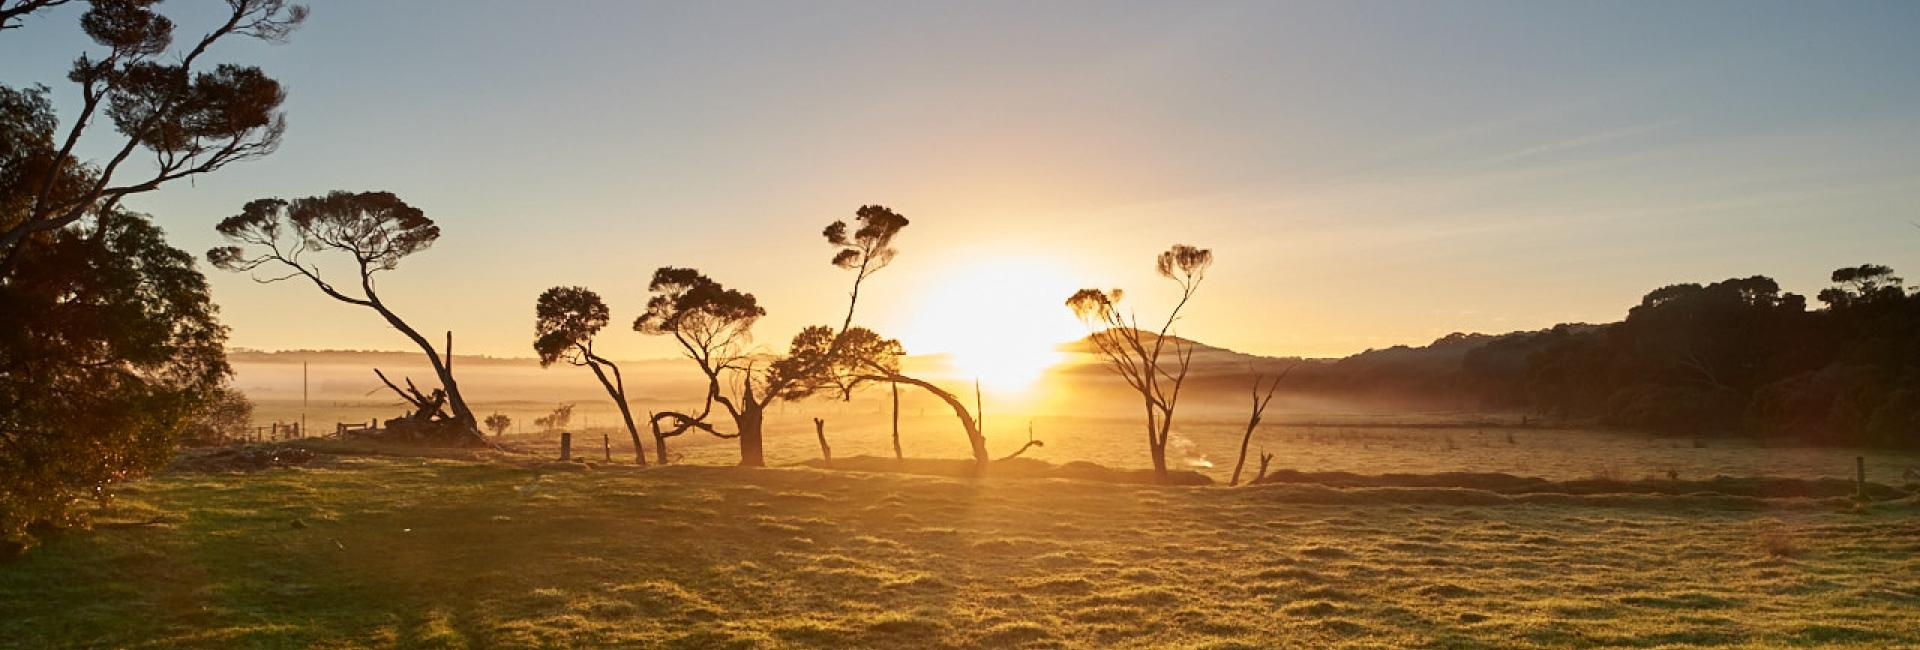 Sunrise, Denmark, Australia's South Wes